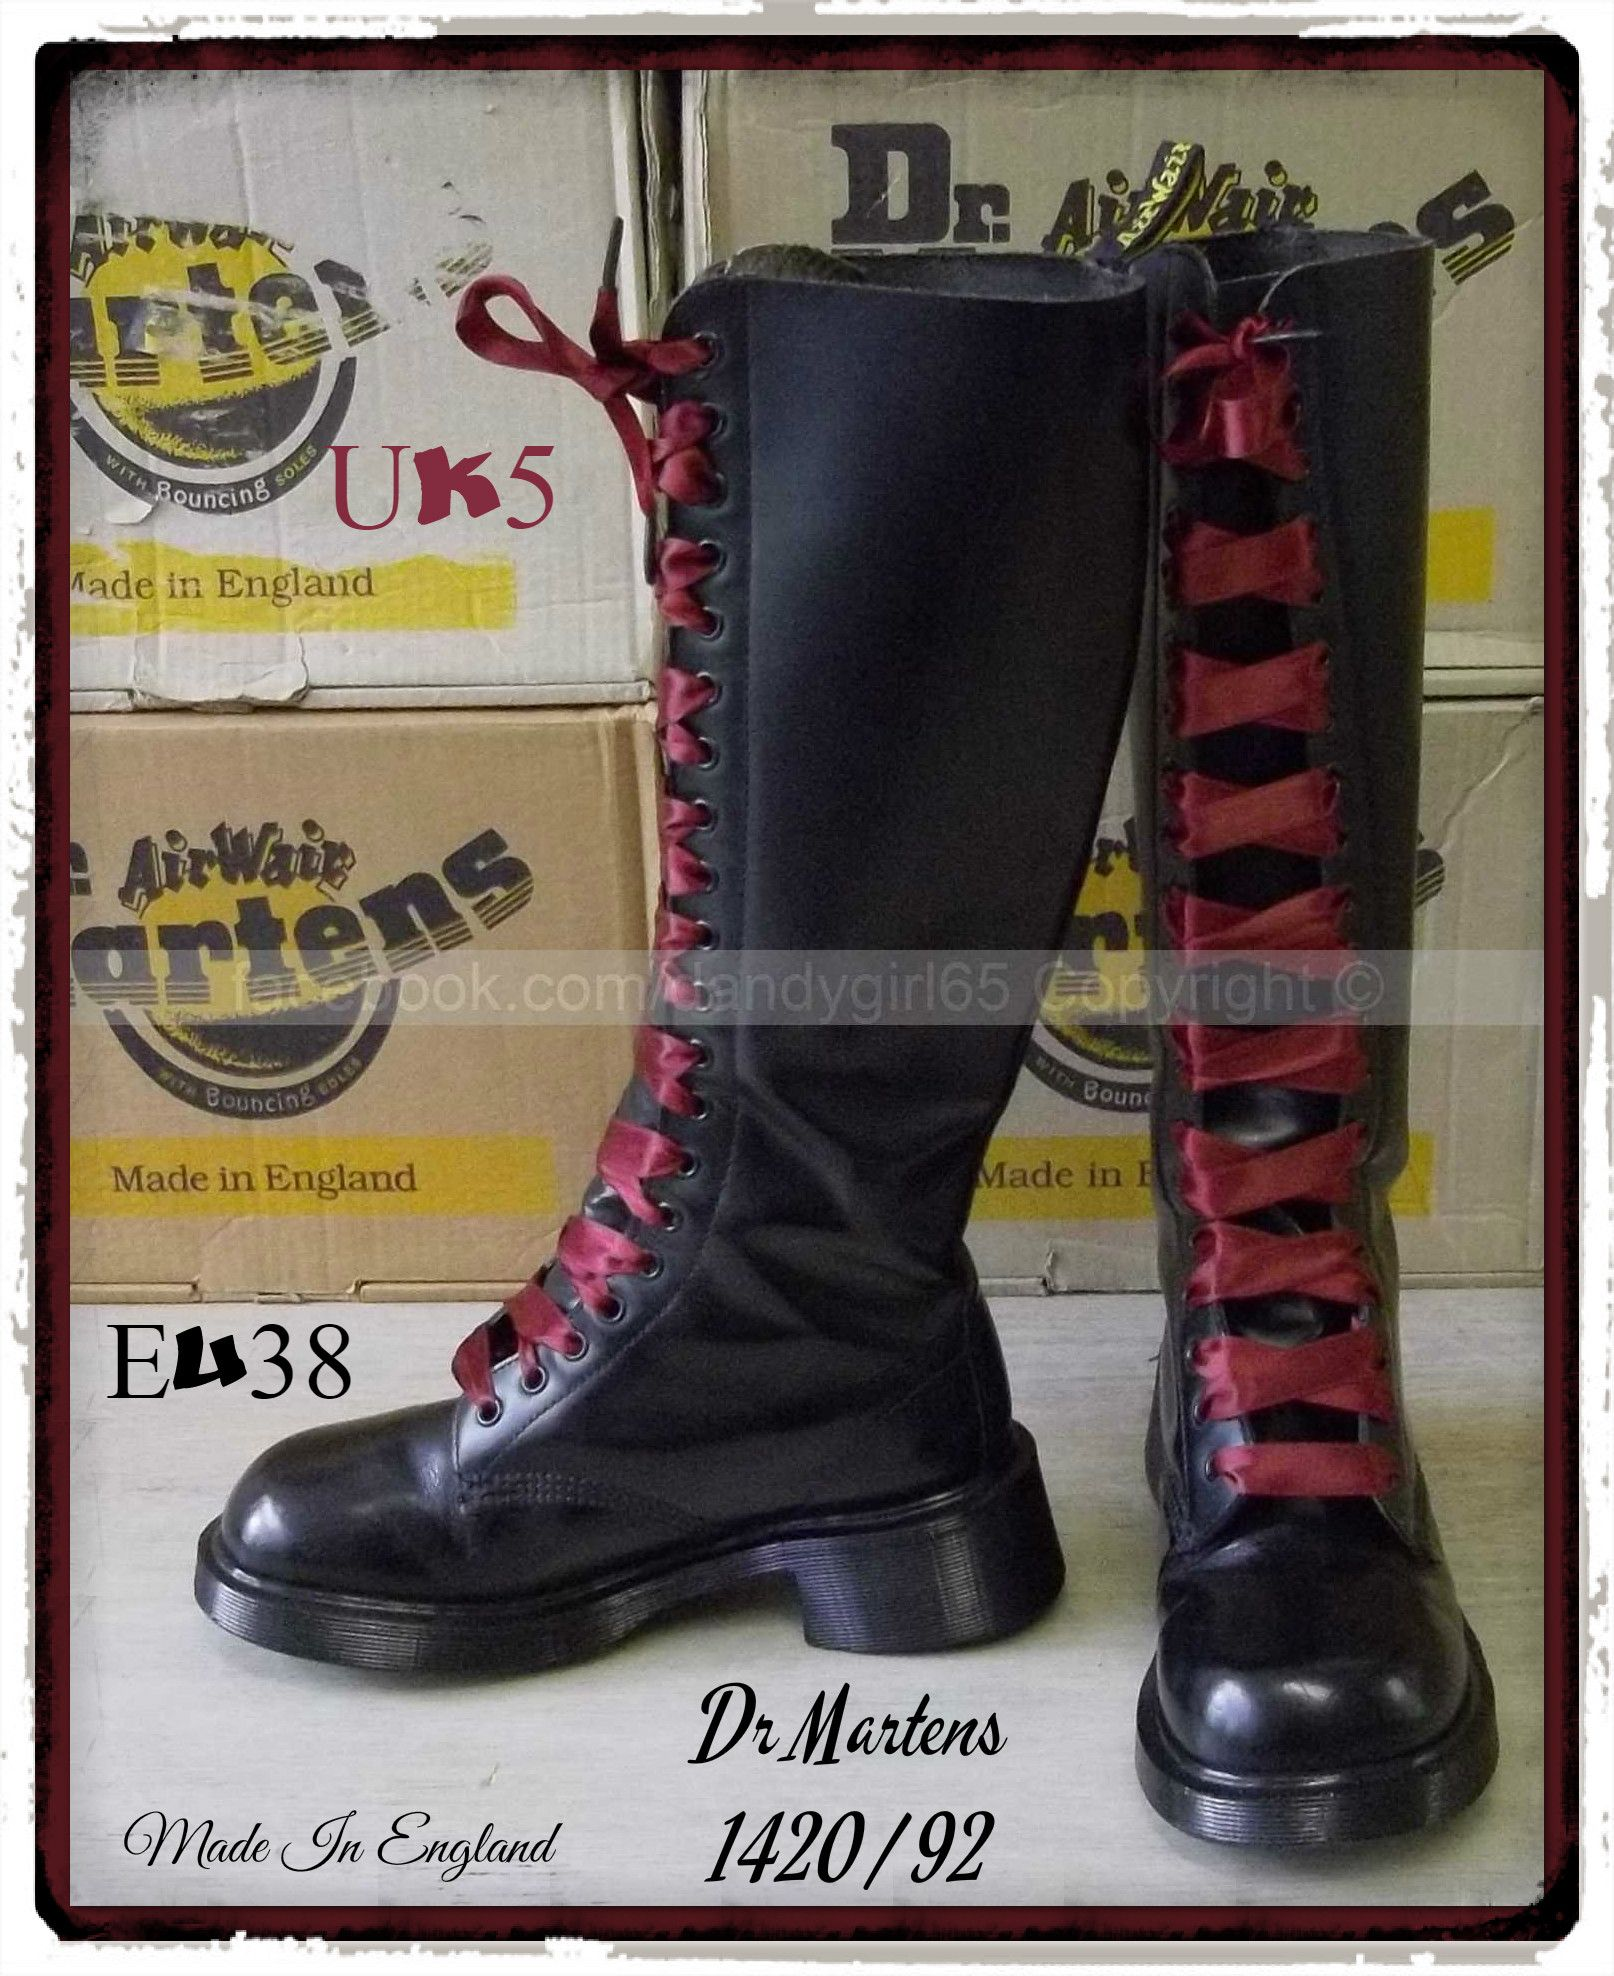 9e12c5f3c22 Dr Martens 1420 92 UK5 P38 Made In England !! 20 Trous collector cuir